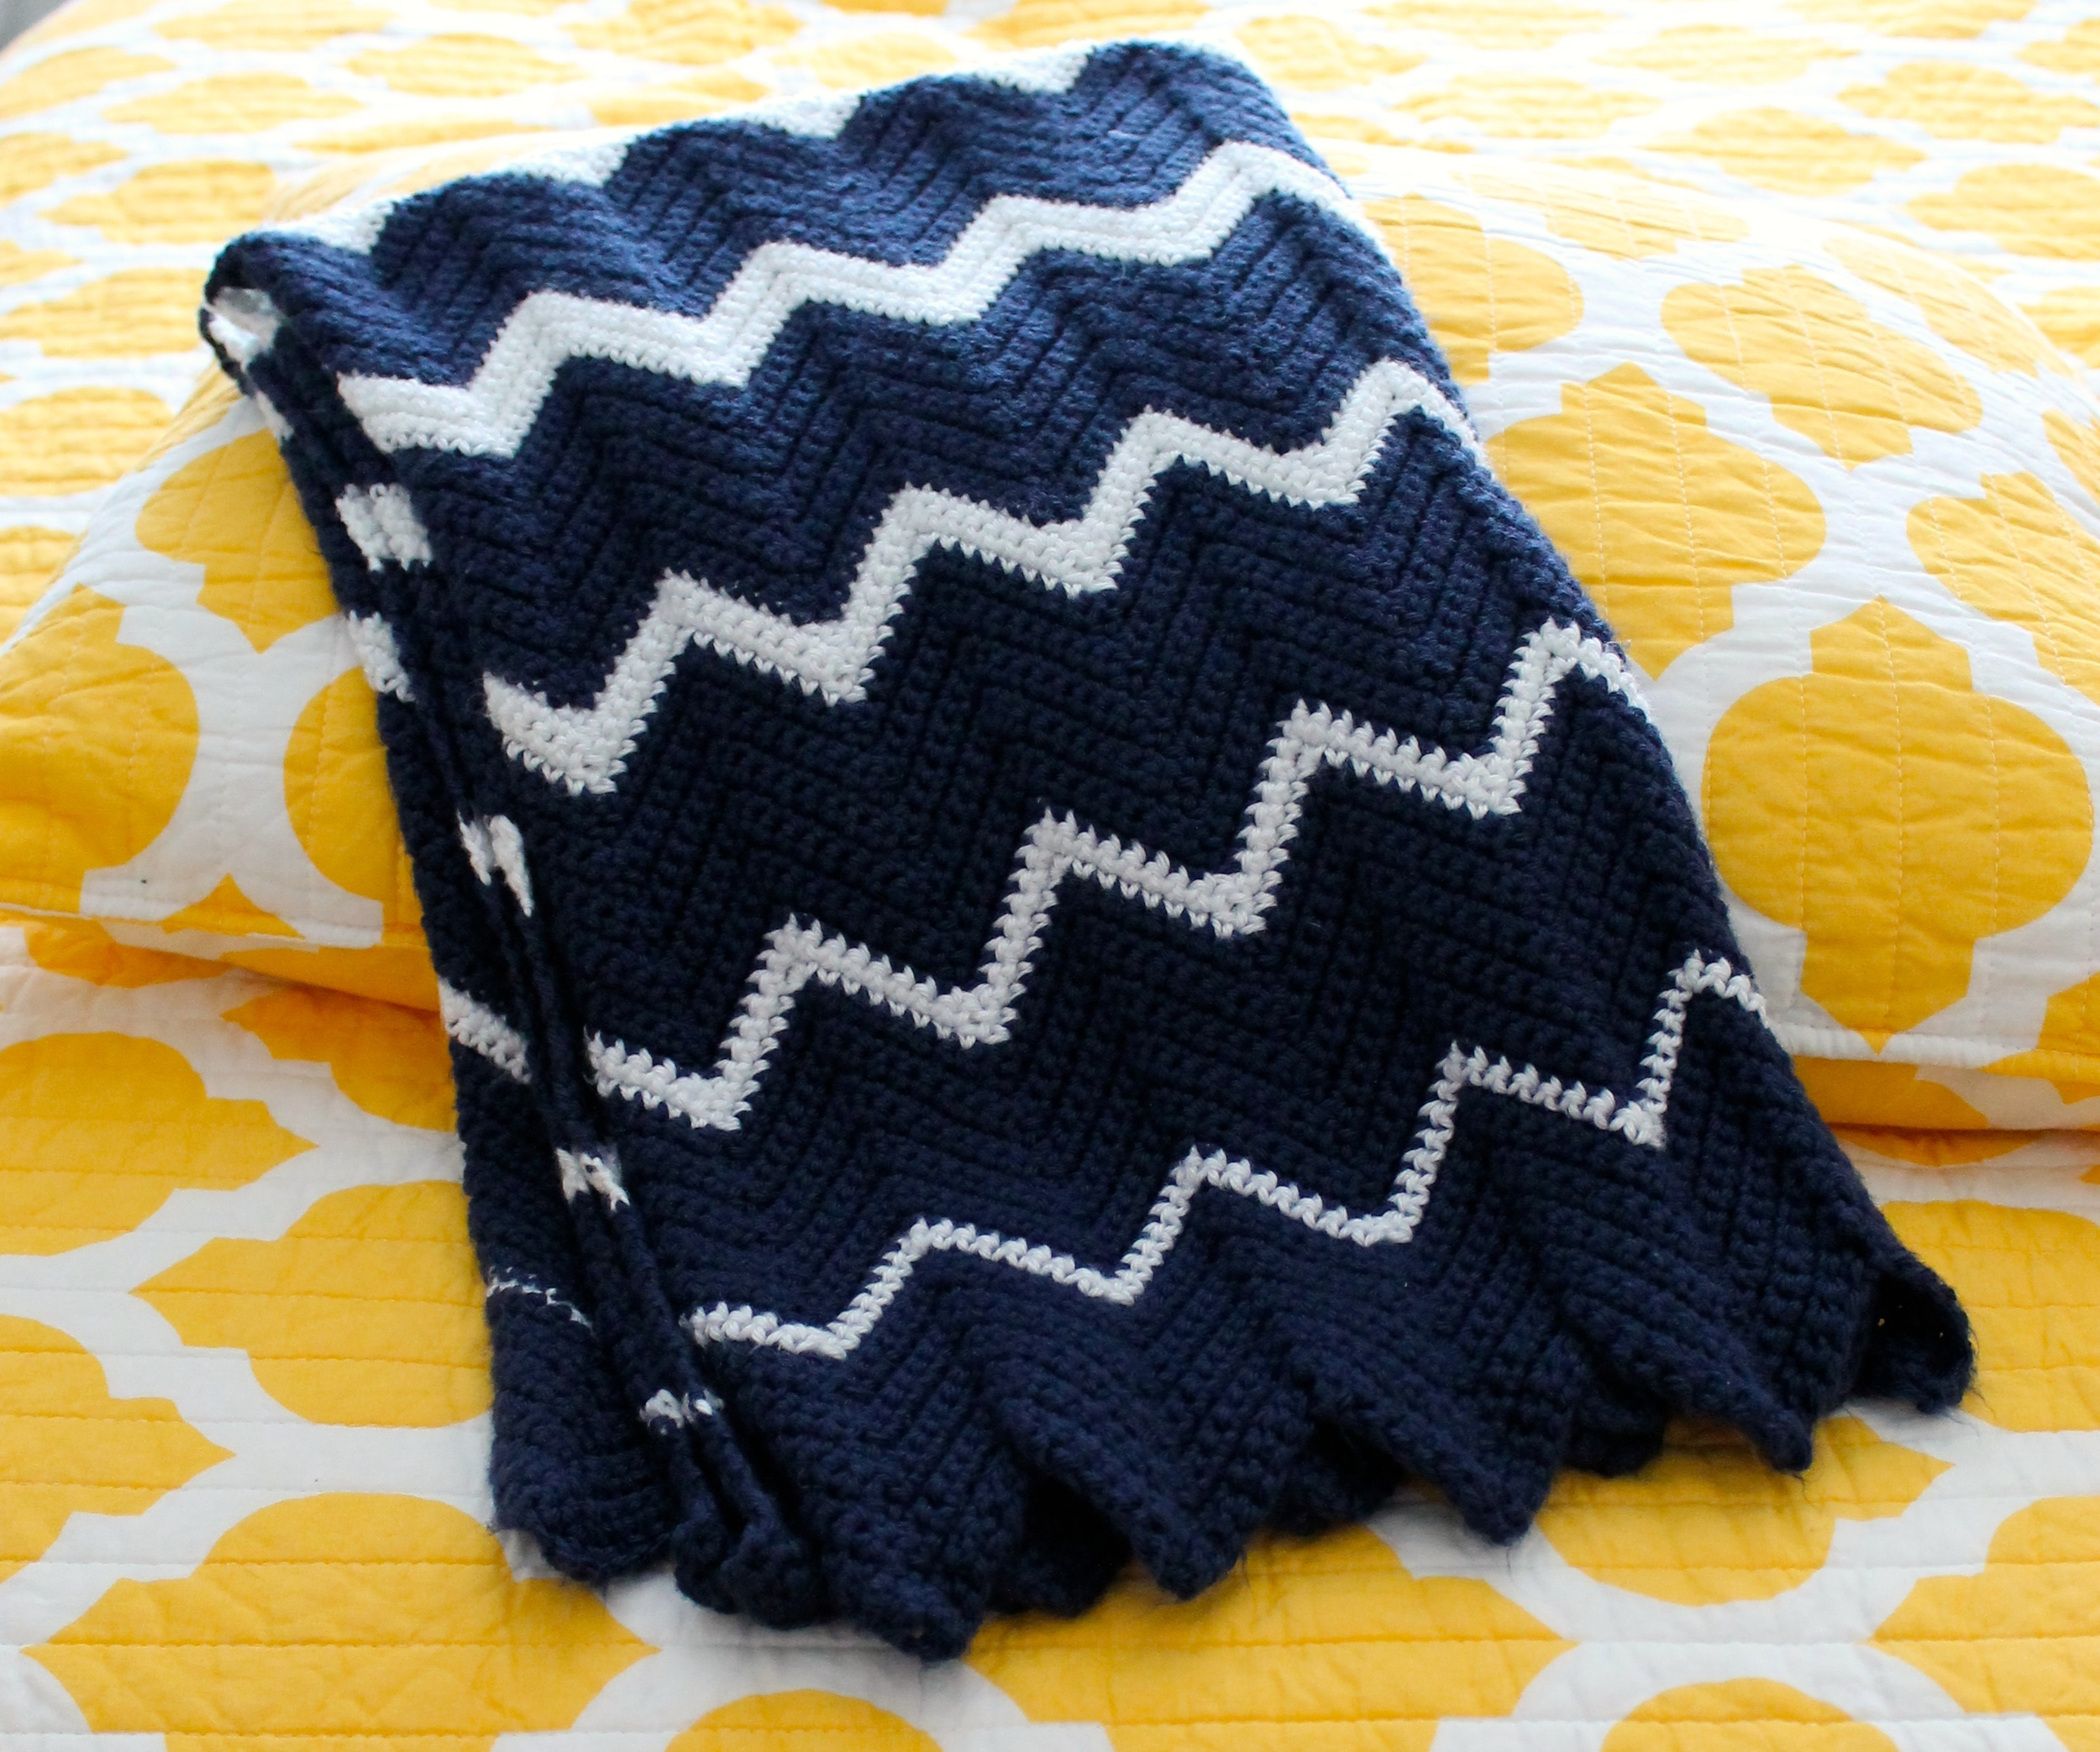 crocheted blanket with navy and white zig zag stripes, folded, laying on a yellow background